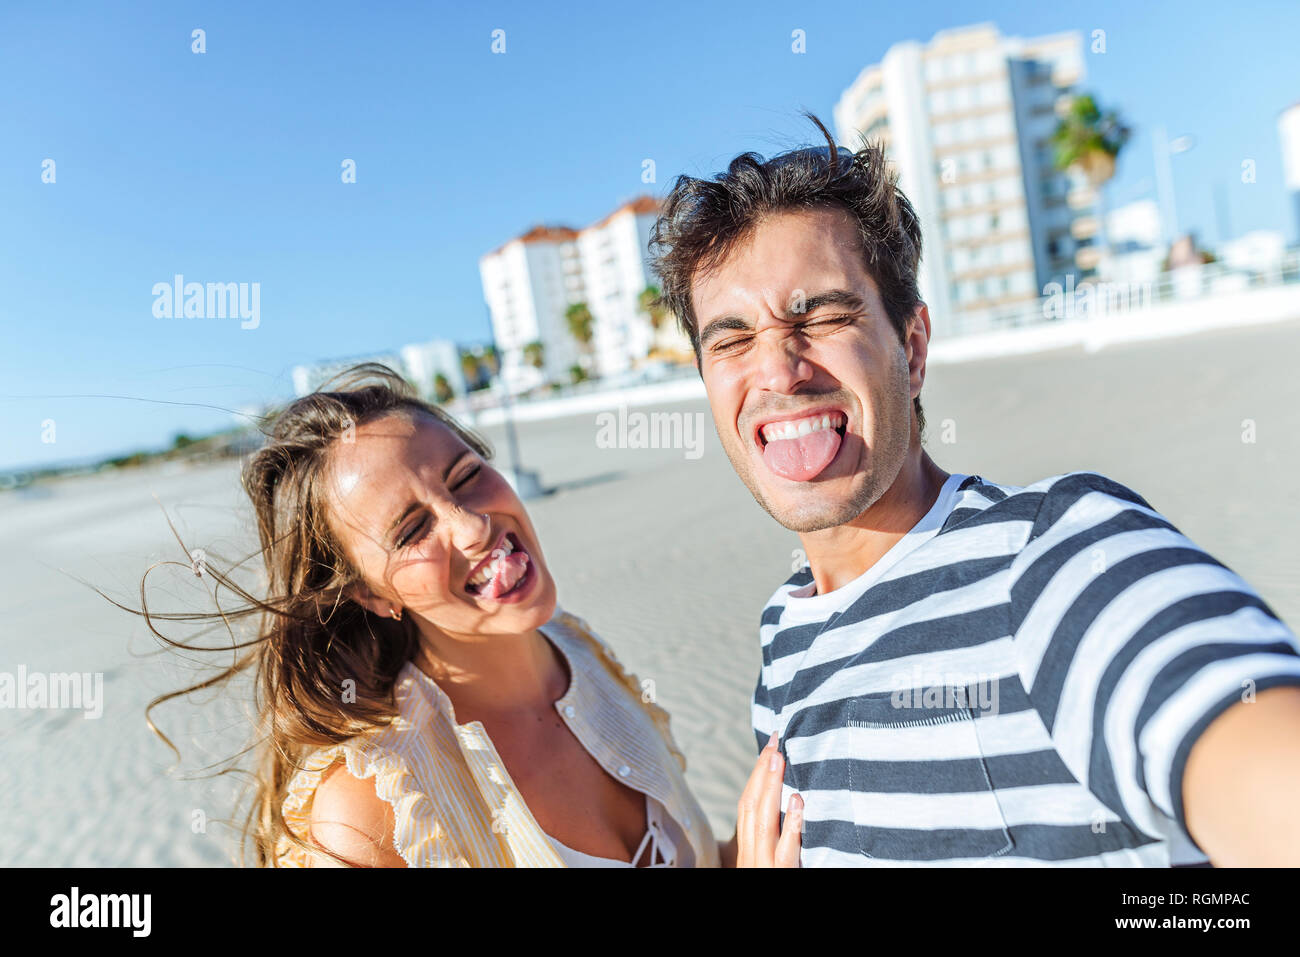 Funny selfie of a happy young couple on the beach - Stock Image